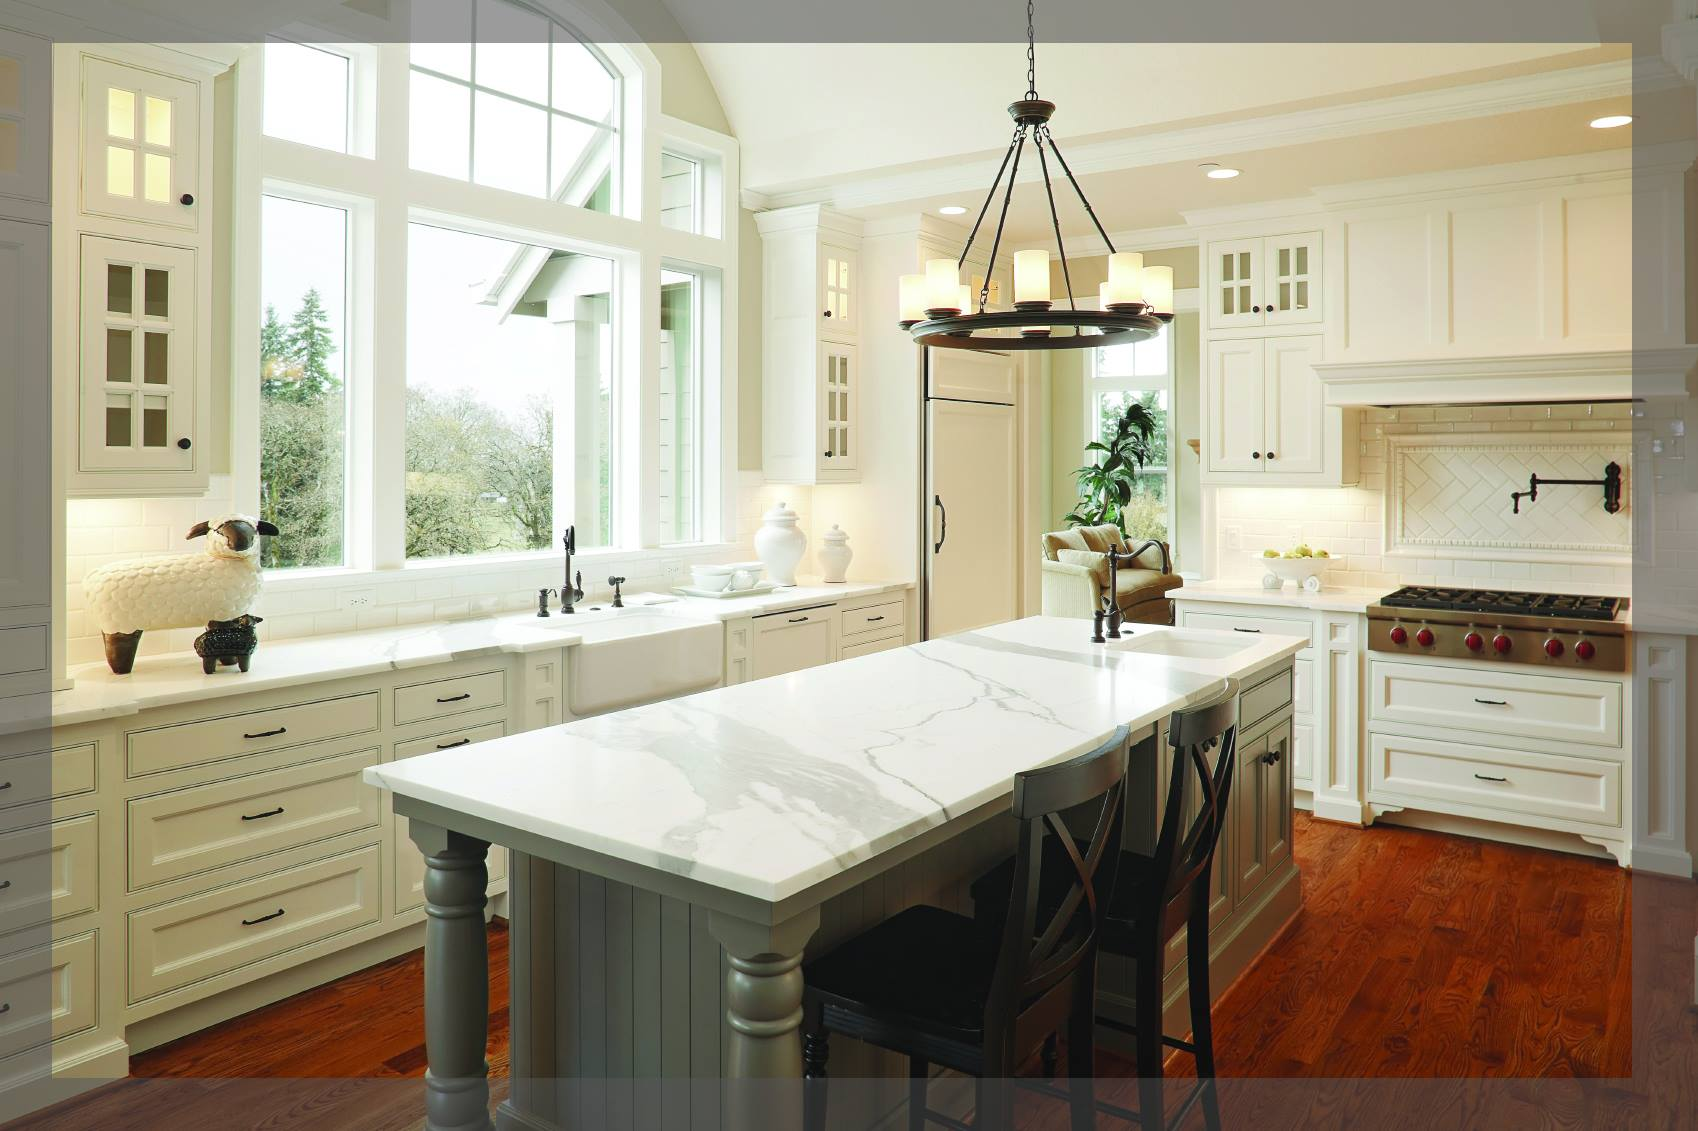 Ddk Kitchen Design Group In Schaumburg Il Homeguide